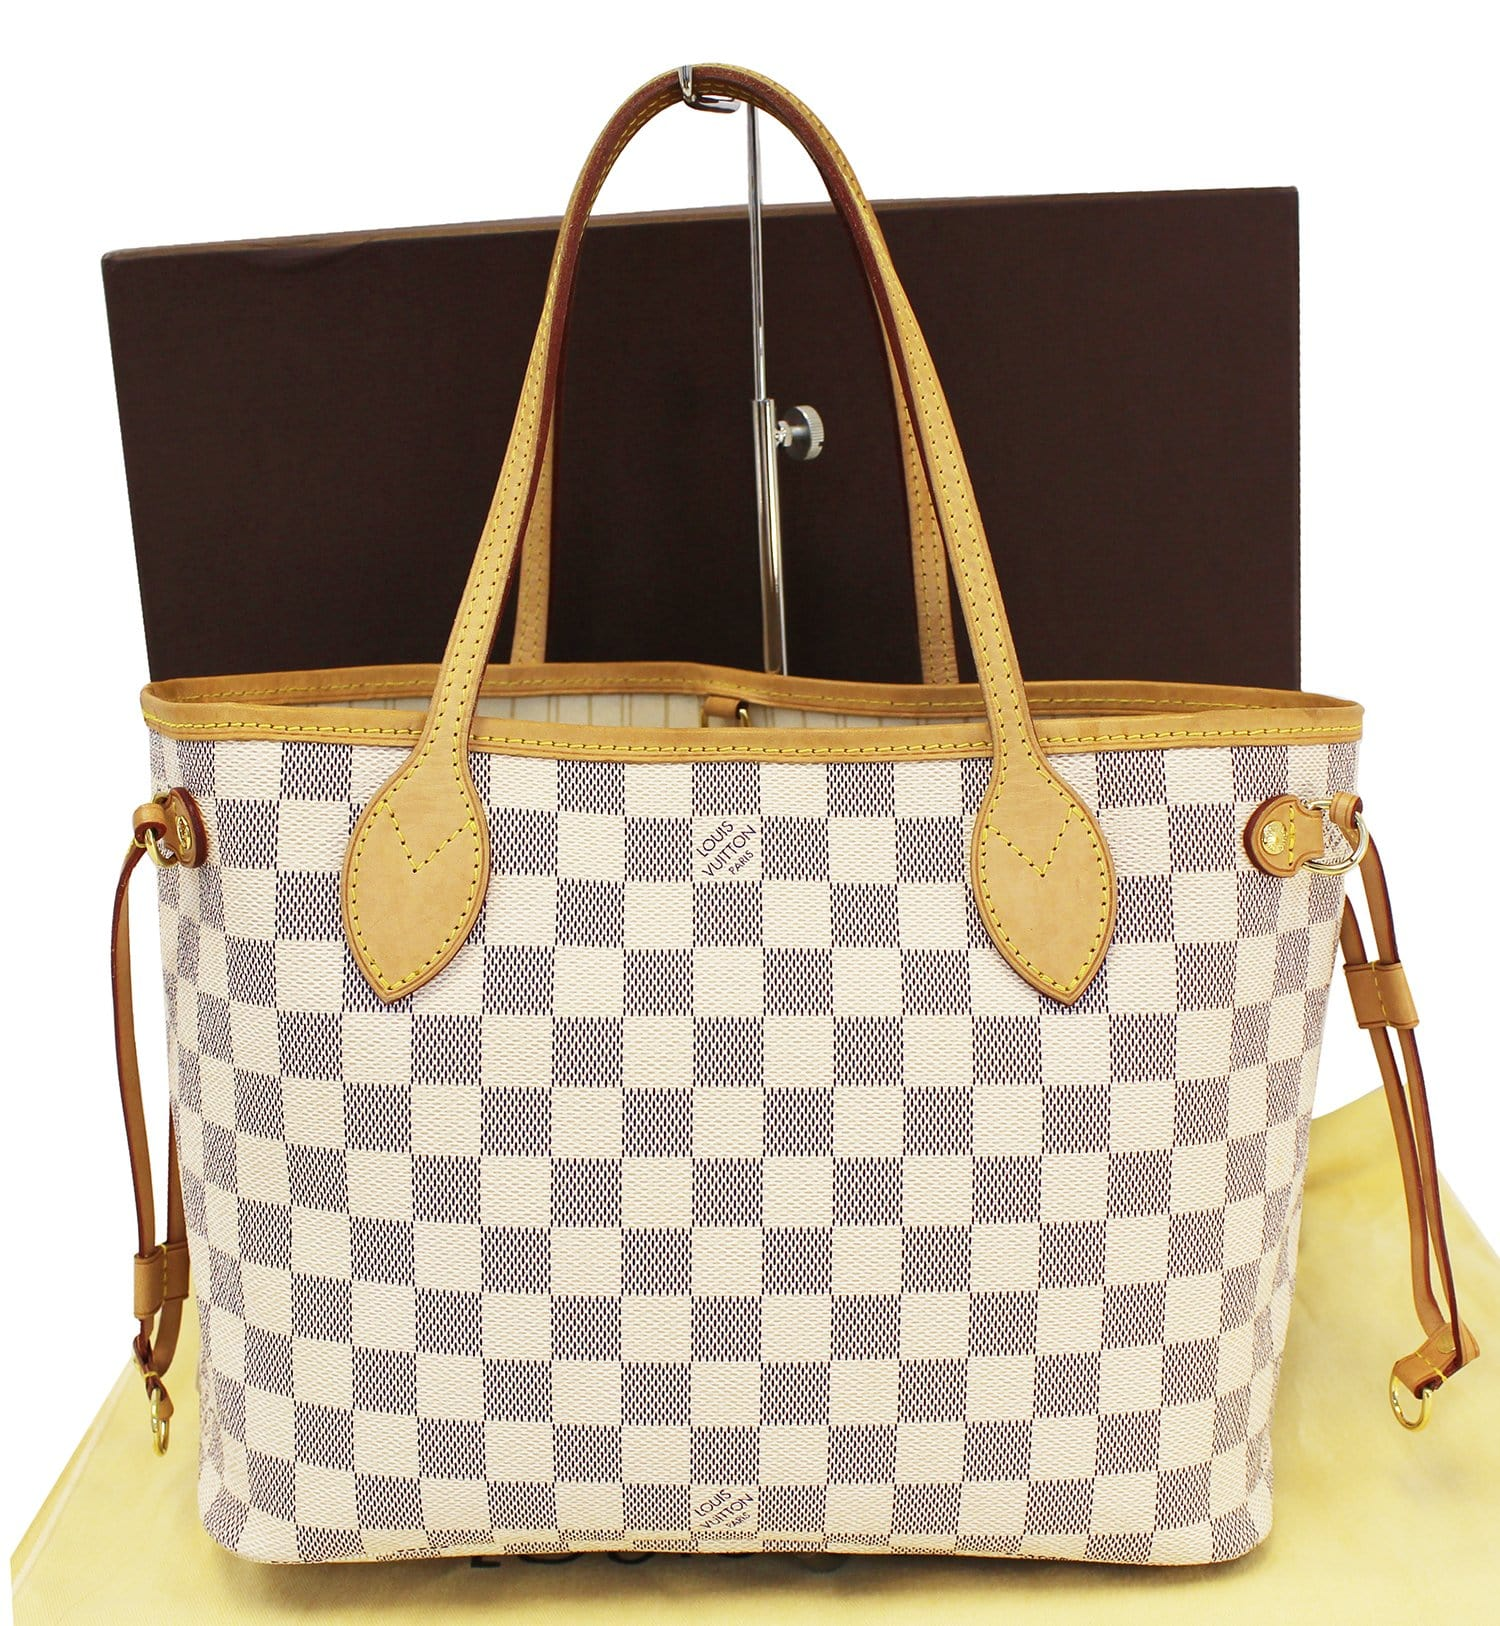 33c66dd6e9de Authentic LOUIS VUITTON Neverfull PM Damier Azur Tote Bag E3523